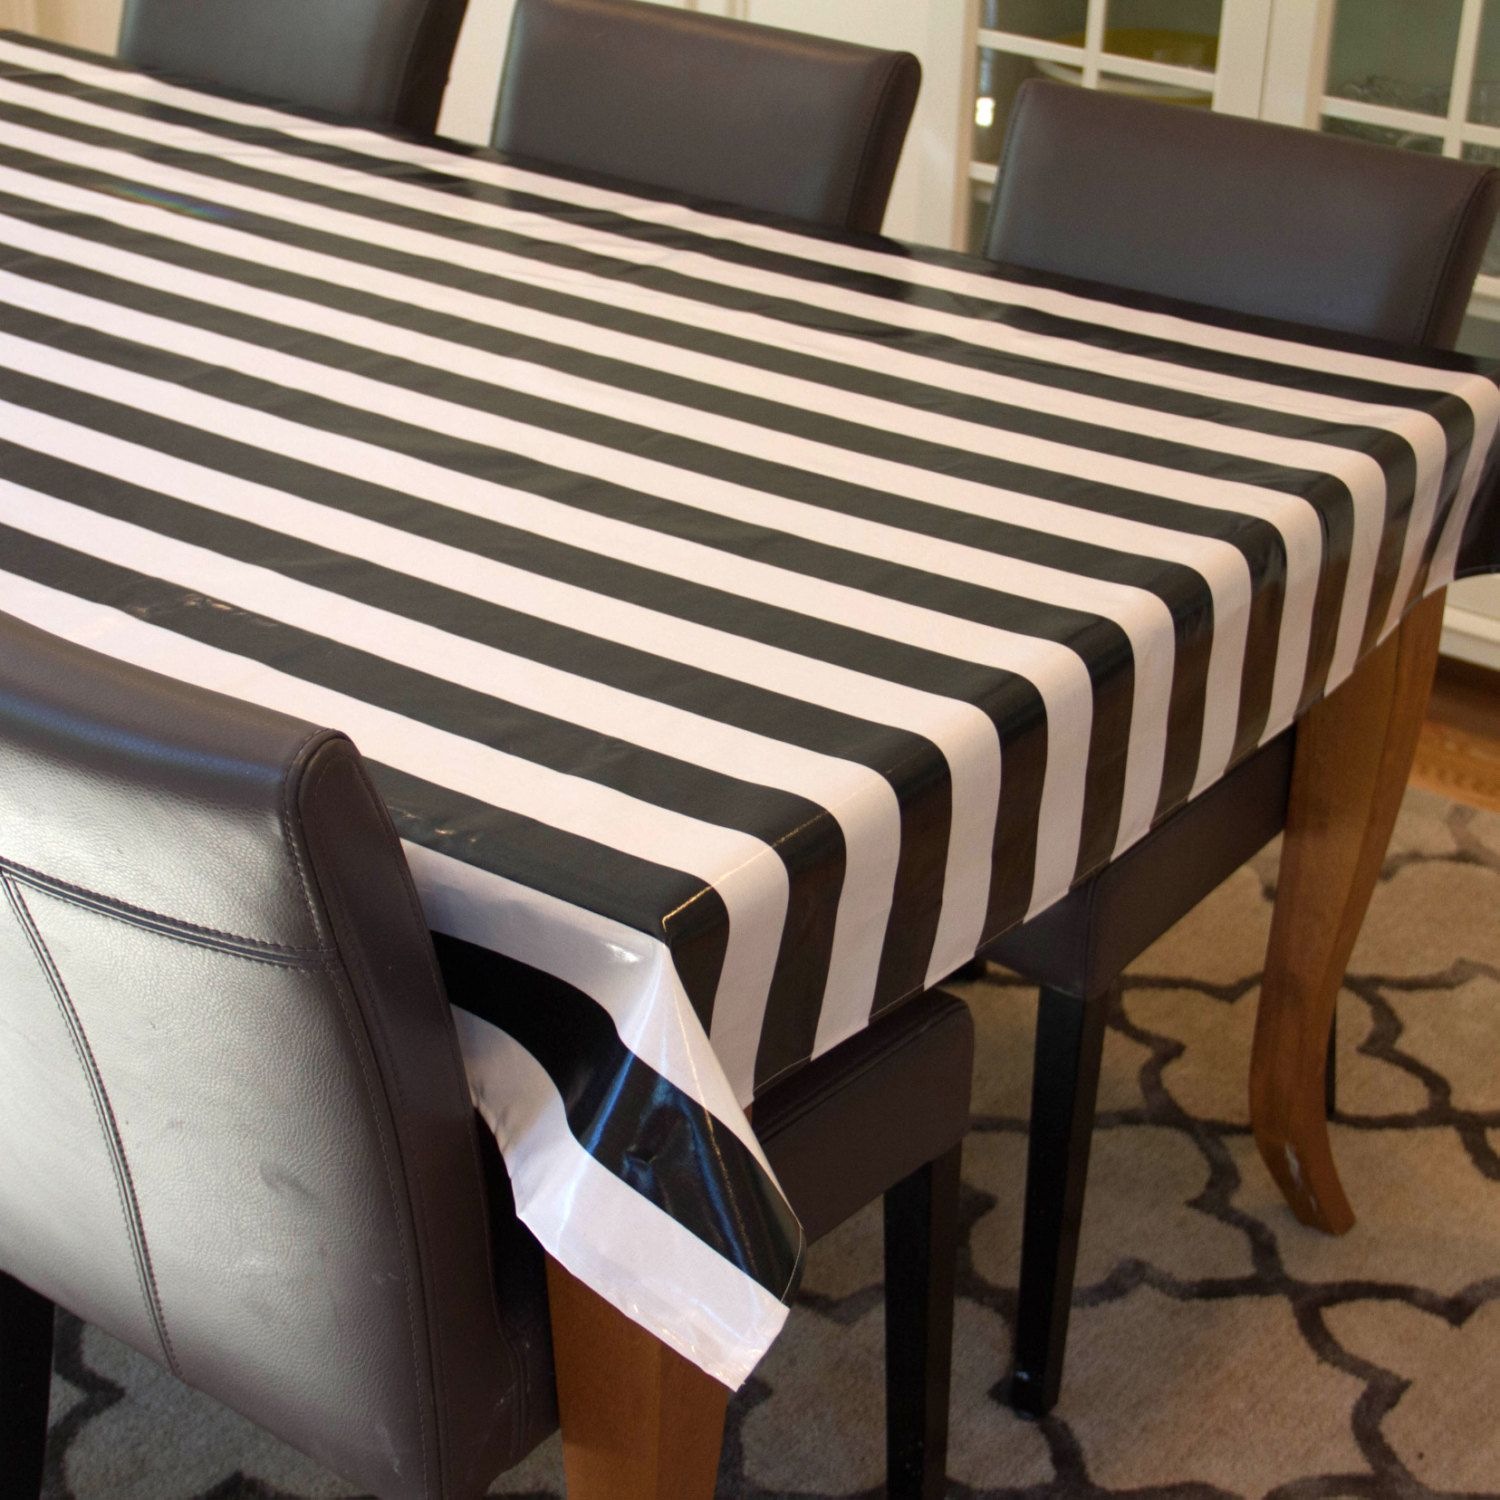 Charmant Oilcloth Tablecloth Laminated Cotton Waterproof Coated Table Cloth Laminate  Cotton Square Round Oval Rectangle Espresso Black